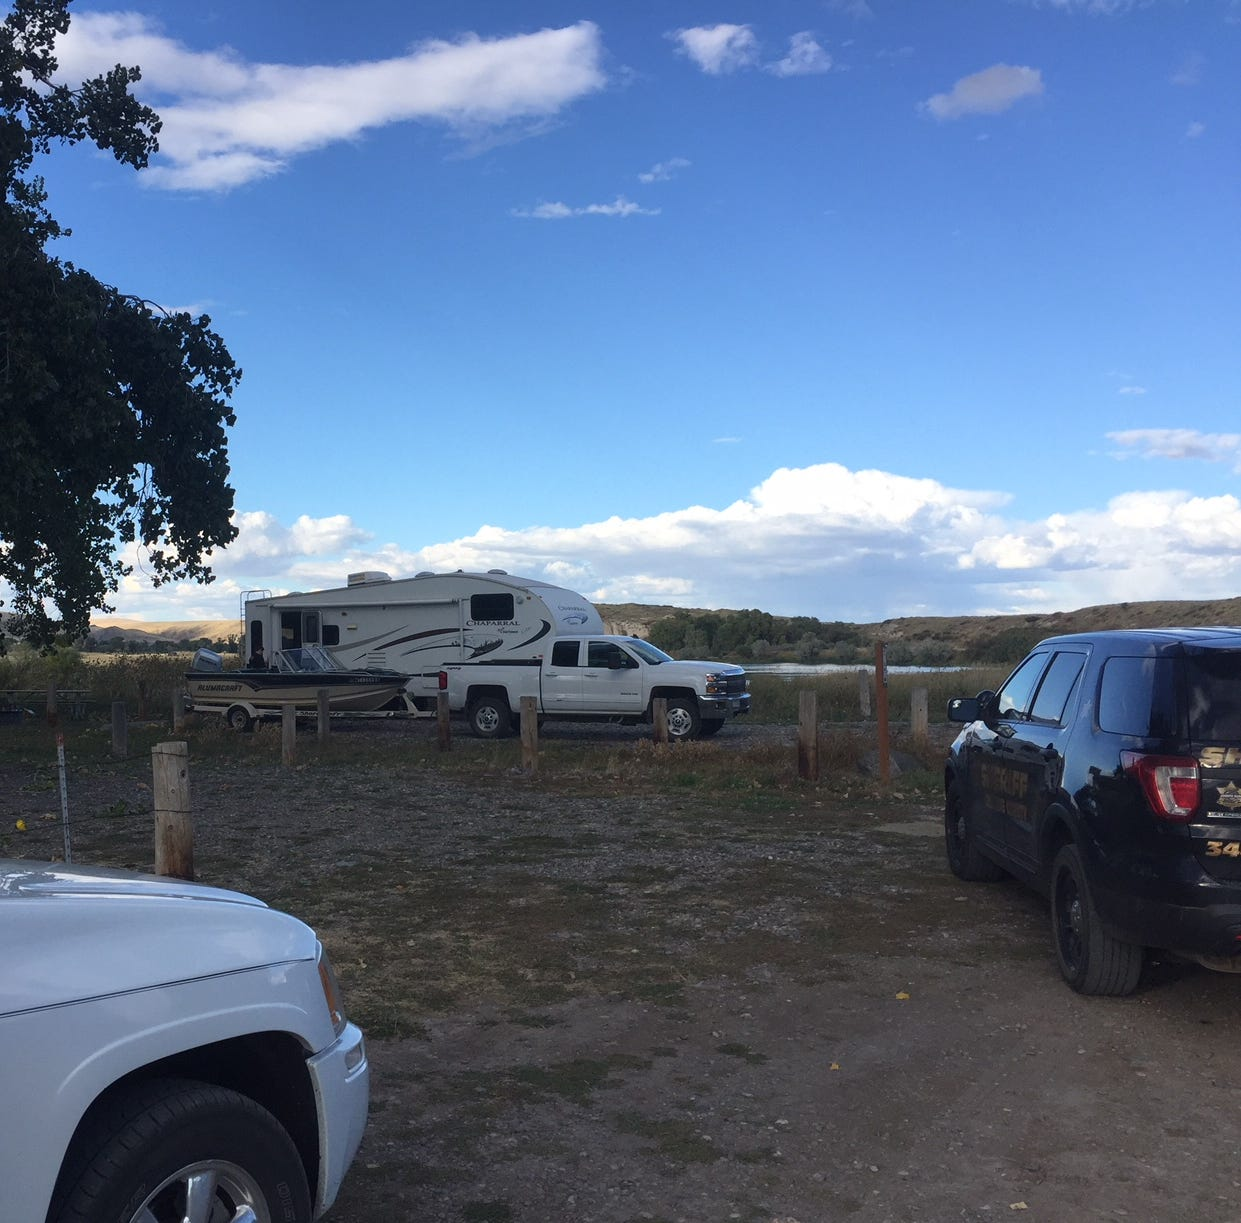 Two found dead in camper at Pelican Point ID'd as Lewistown residents